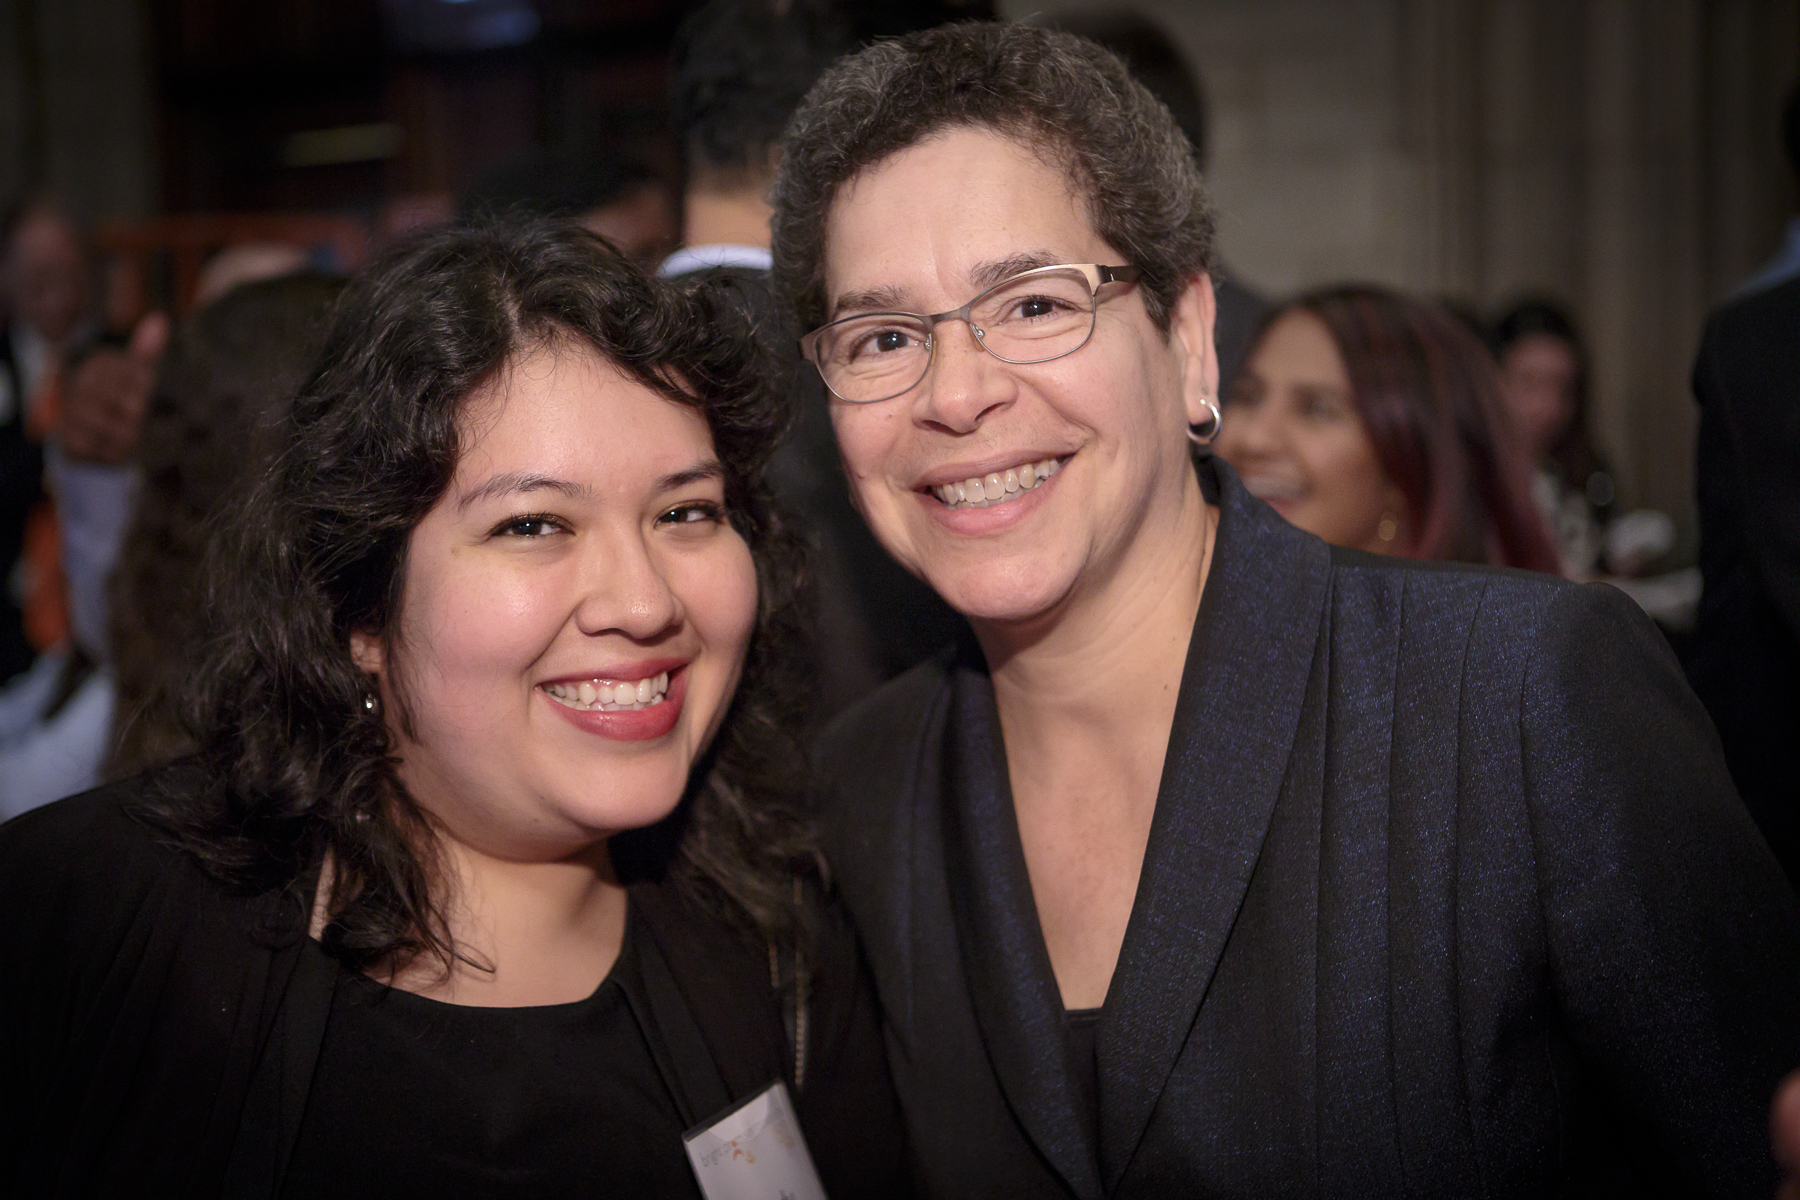 Polk Brothers Foundation Vice President Evette Cardona (right) with  Cindy Camacho (left). (Photo by Pablo Poncee)